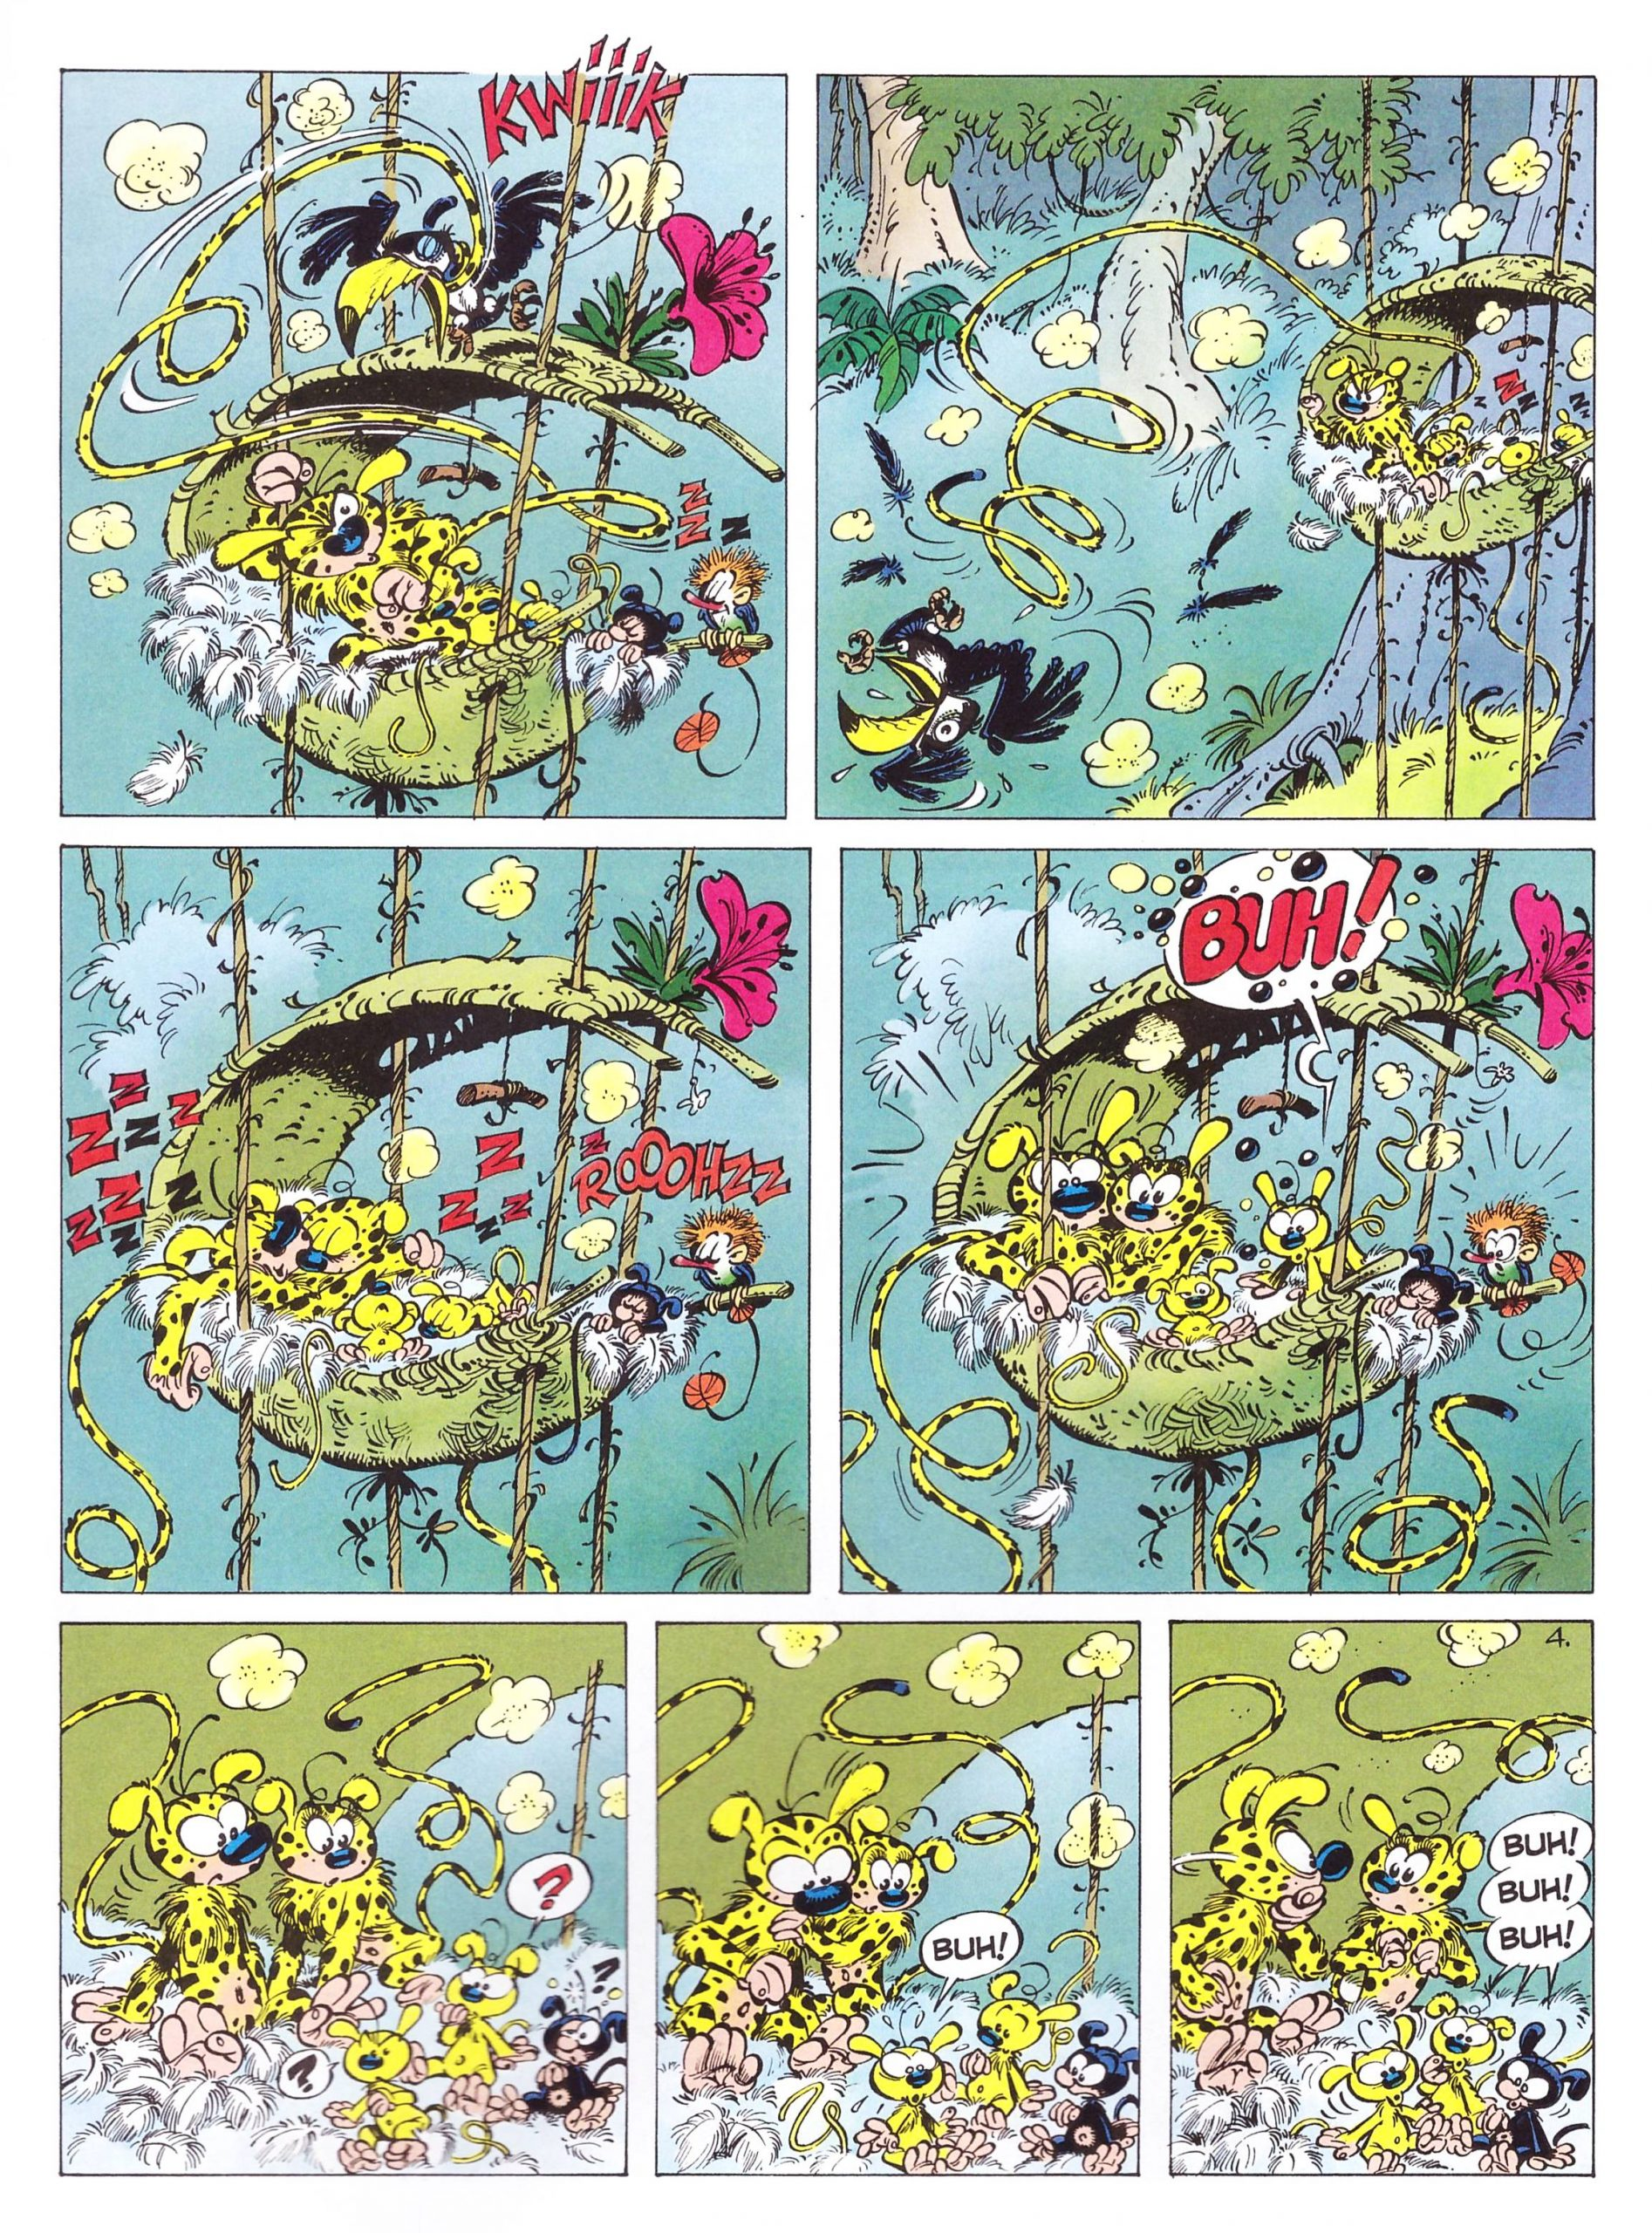 Marsupilami 4 The Pollen of Monte Urticando review